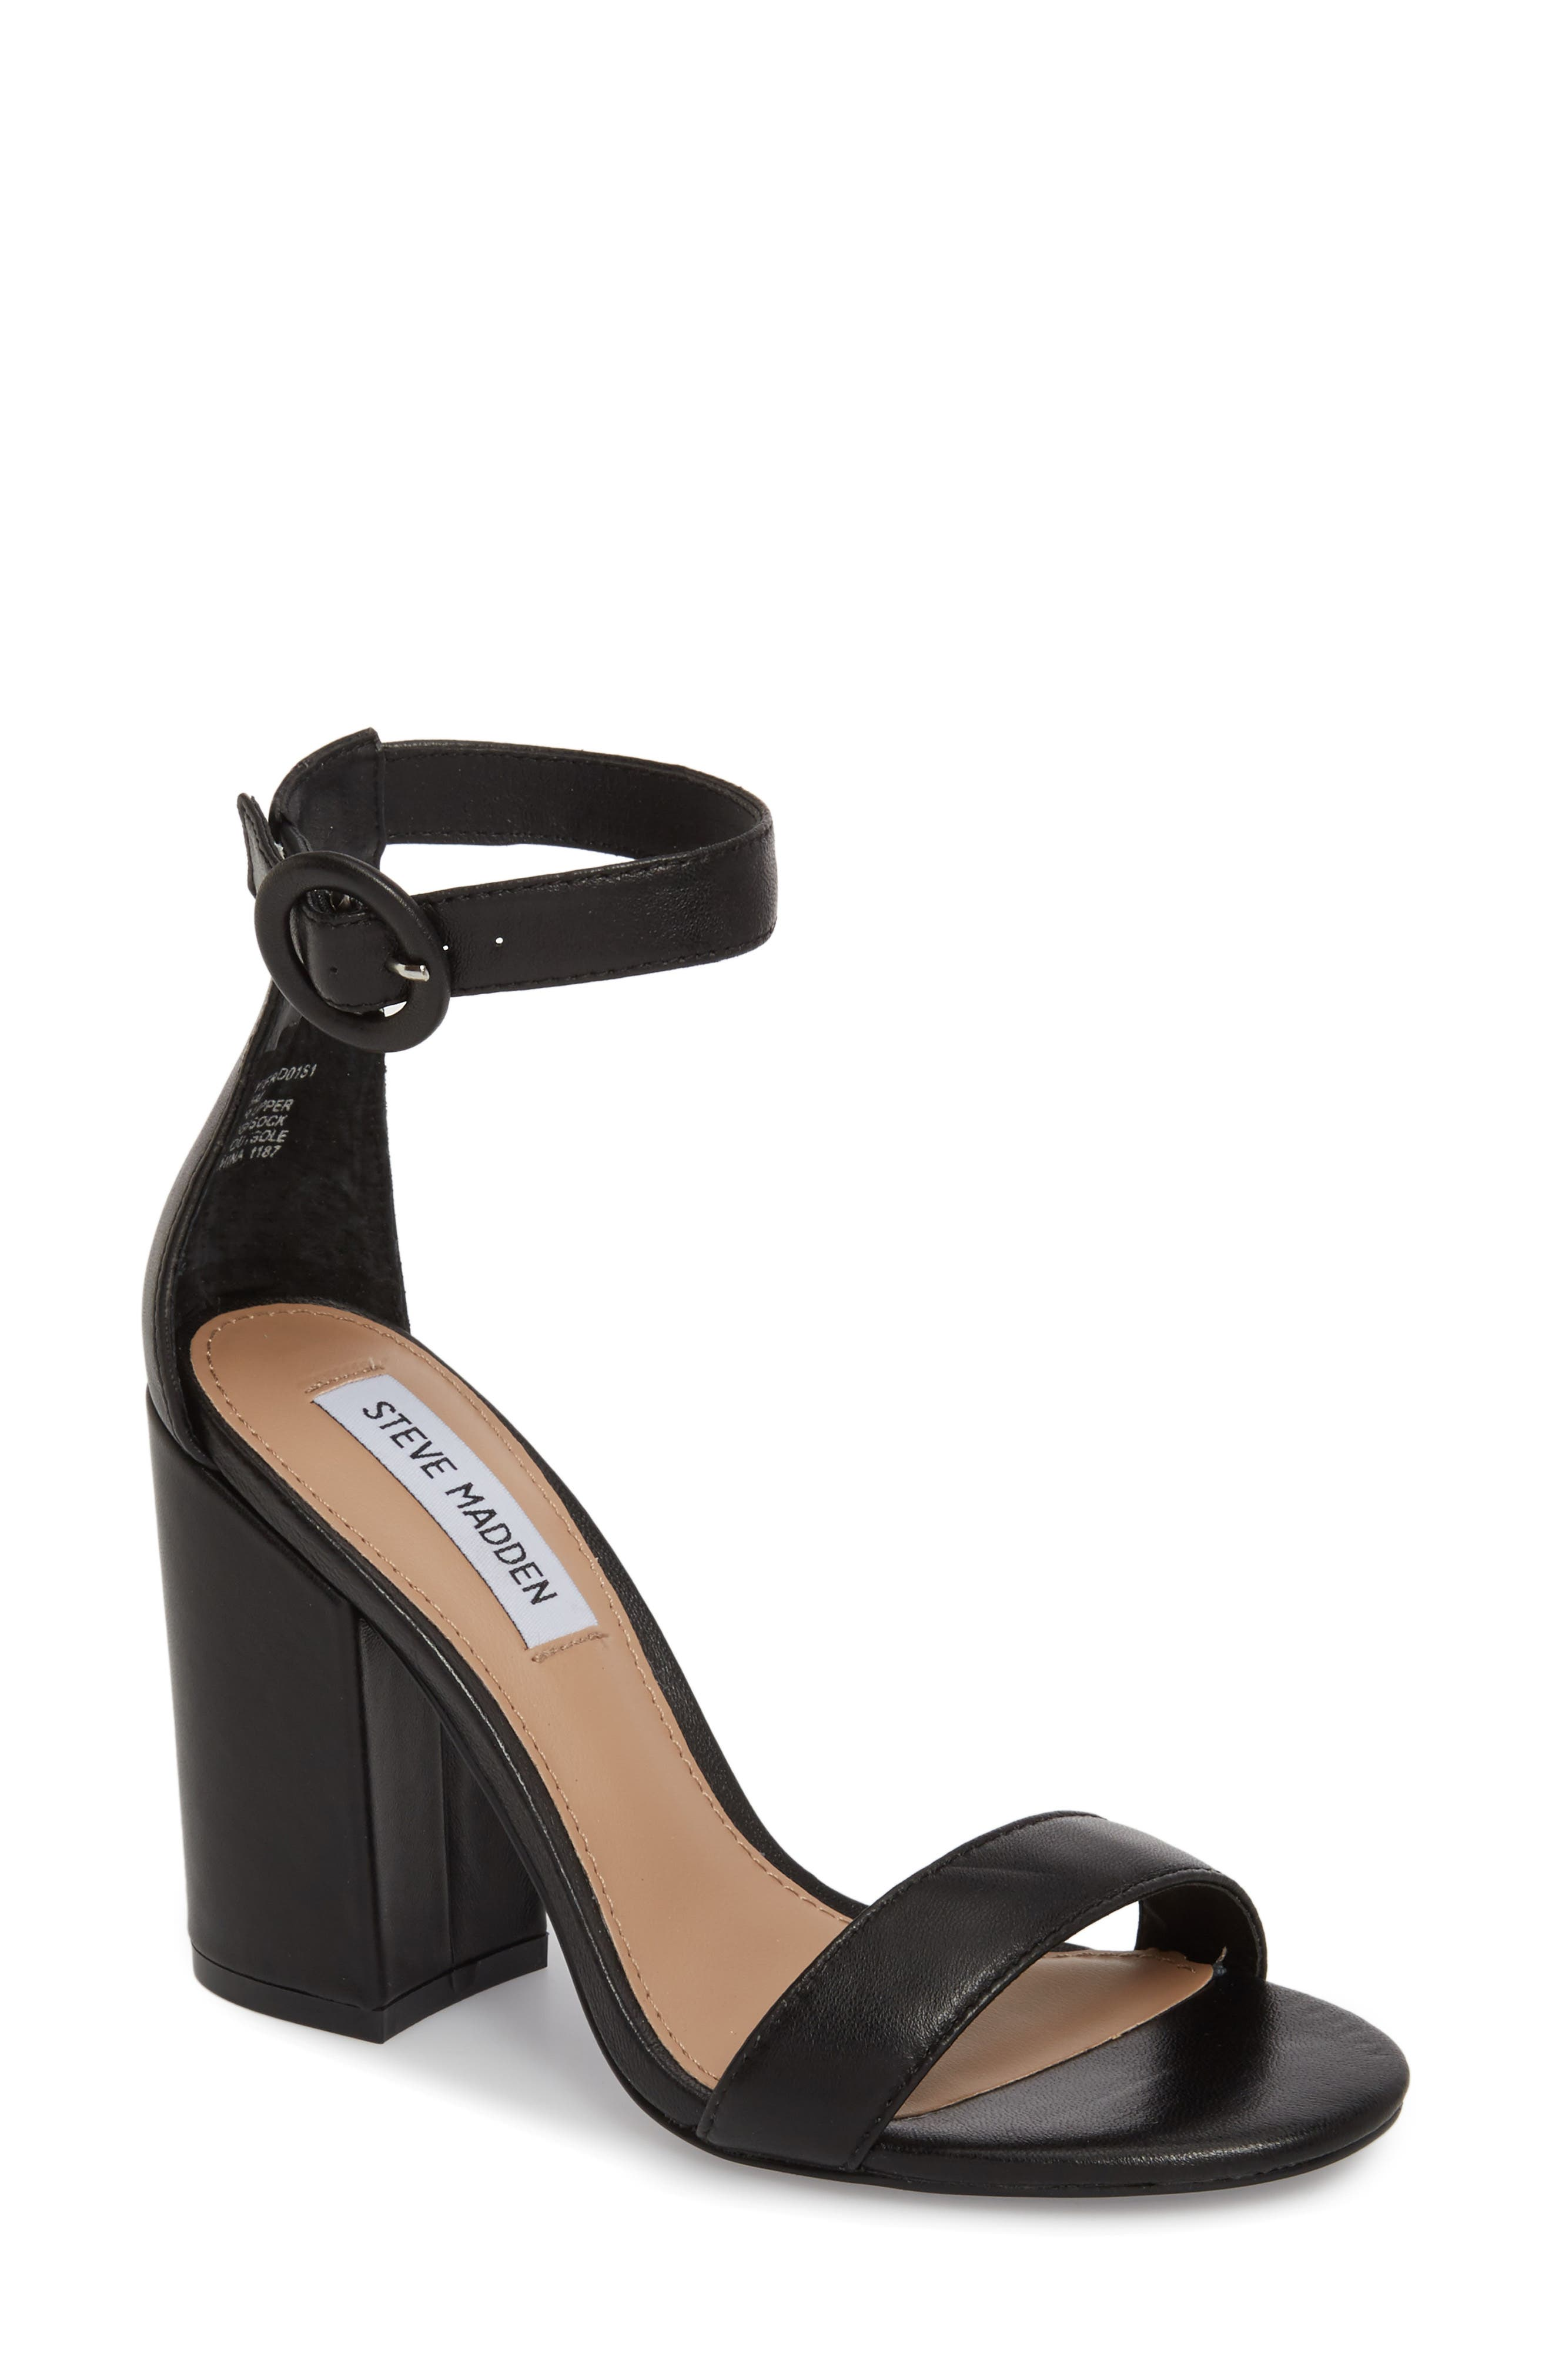 Alternate Image 1 Selected - Steve Madden Friday Sandal (Women)